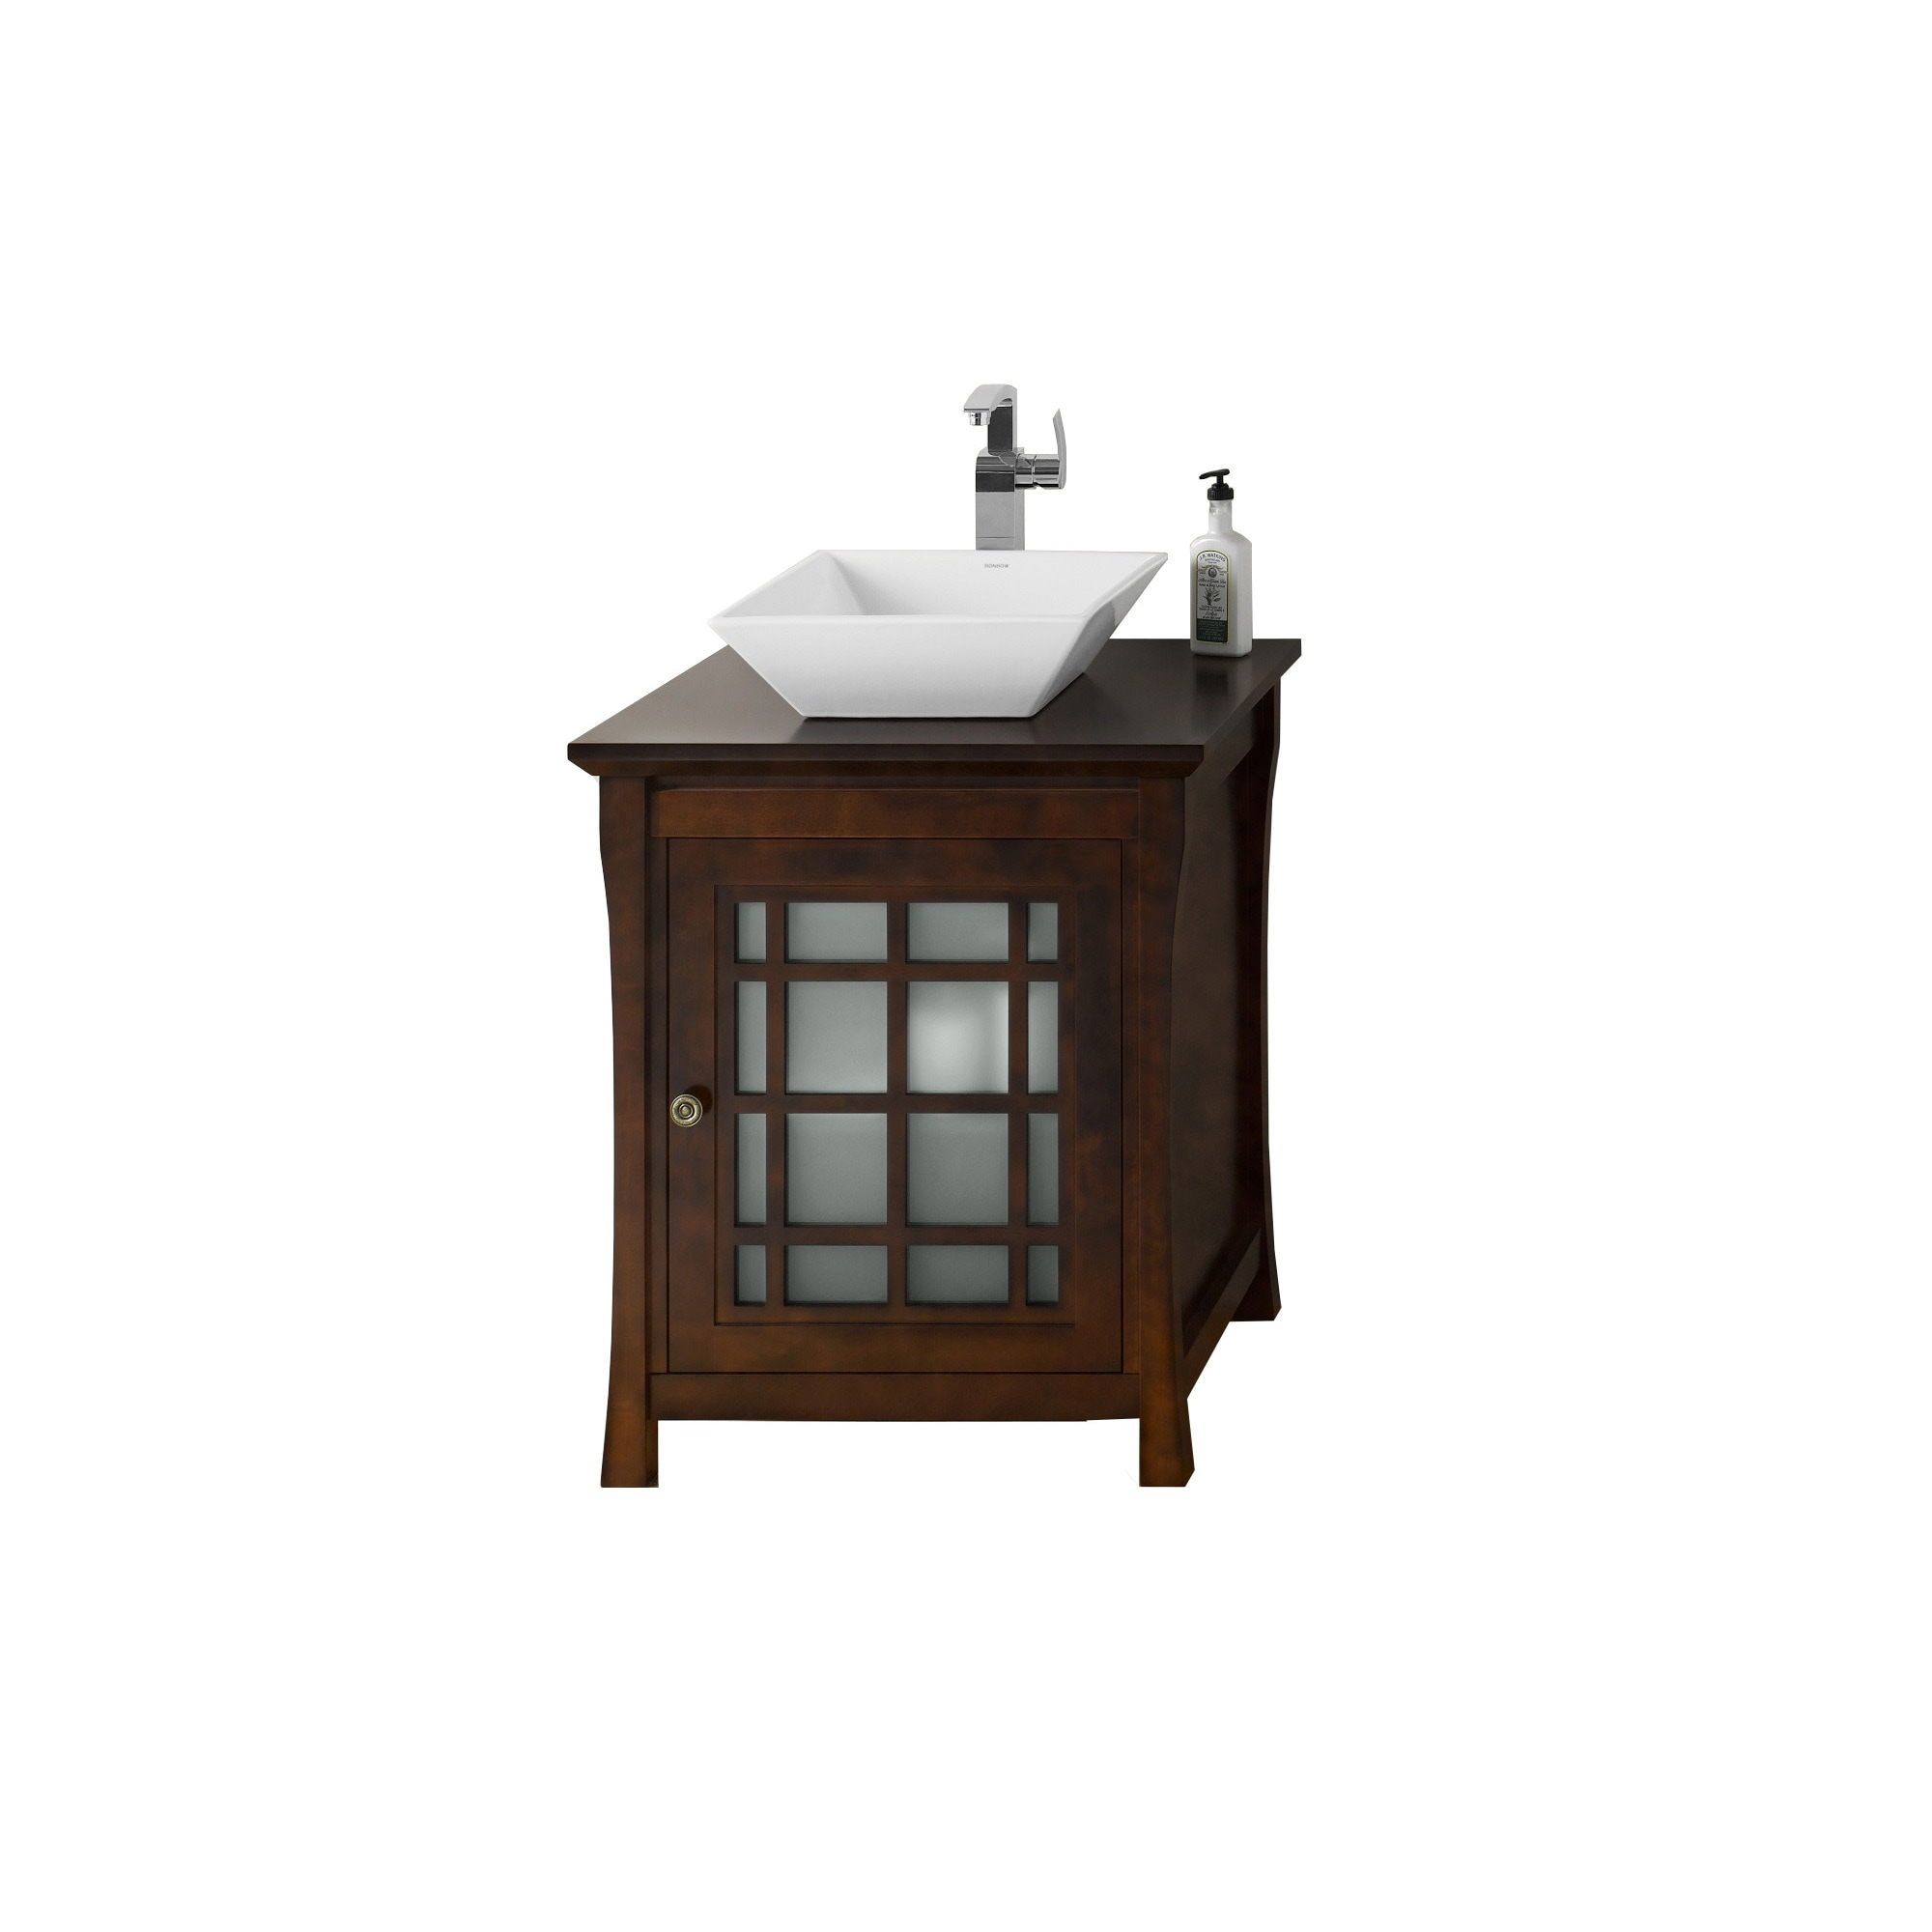 25 inch bathroom vanity. Ronbow Shoji 25-inch Bathroom Vanity Set In Vintage Walnut, Wood Countertop With Square Ceramic Vessel Sink White - Free Shipping Today 25 Inch Y